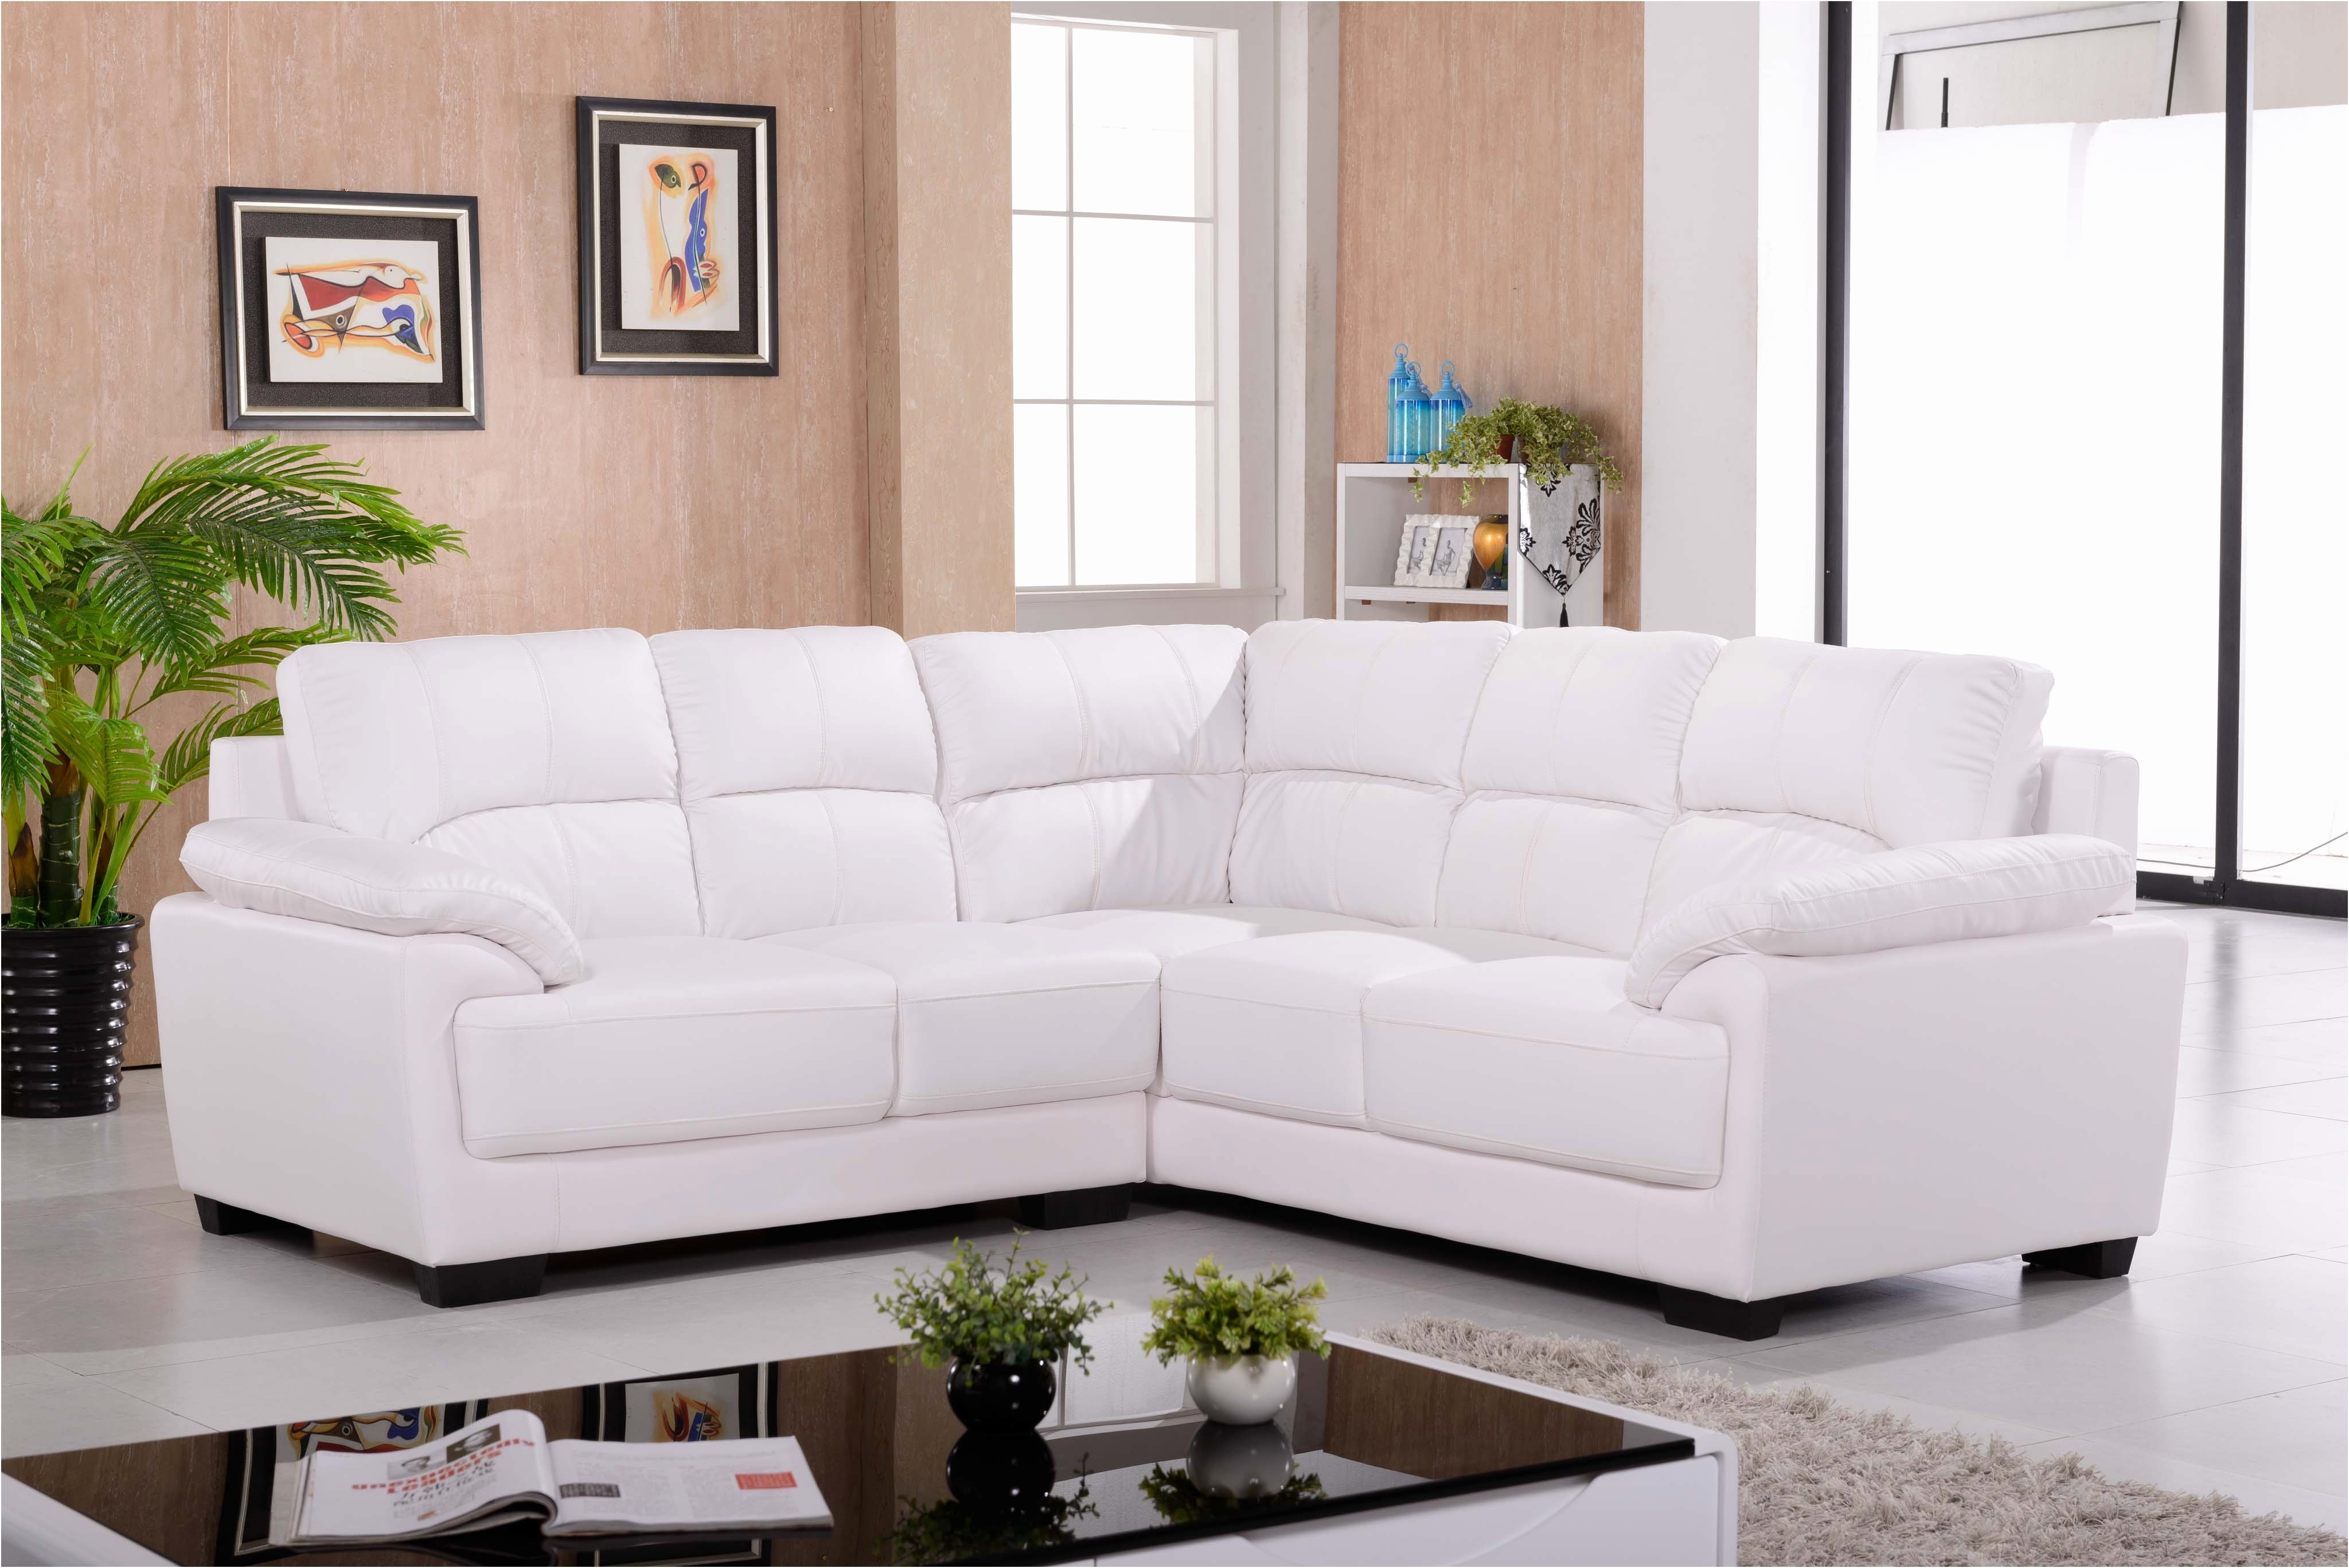 Popular Canada Sale Sectional Sofas In Sofas Awesome White Leather Loveseat Gray Sectional Sofa Canada (View 12 of 20)